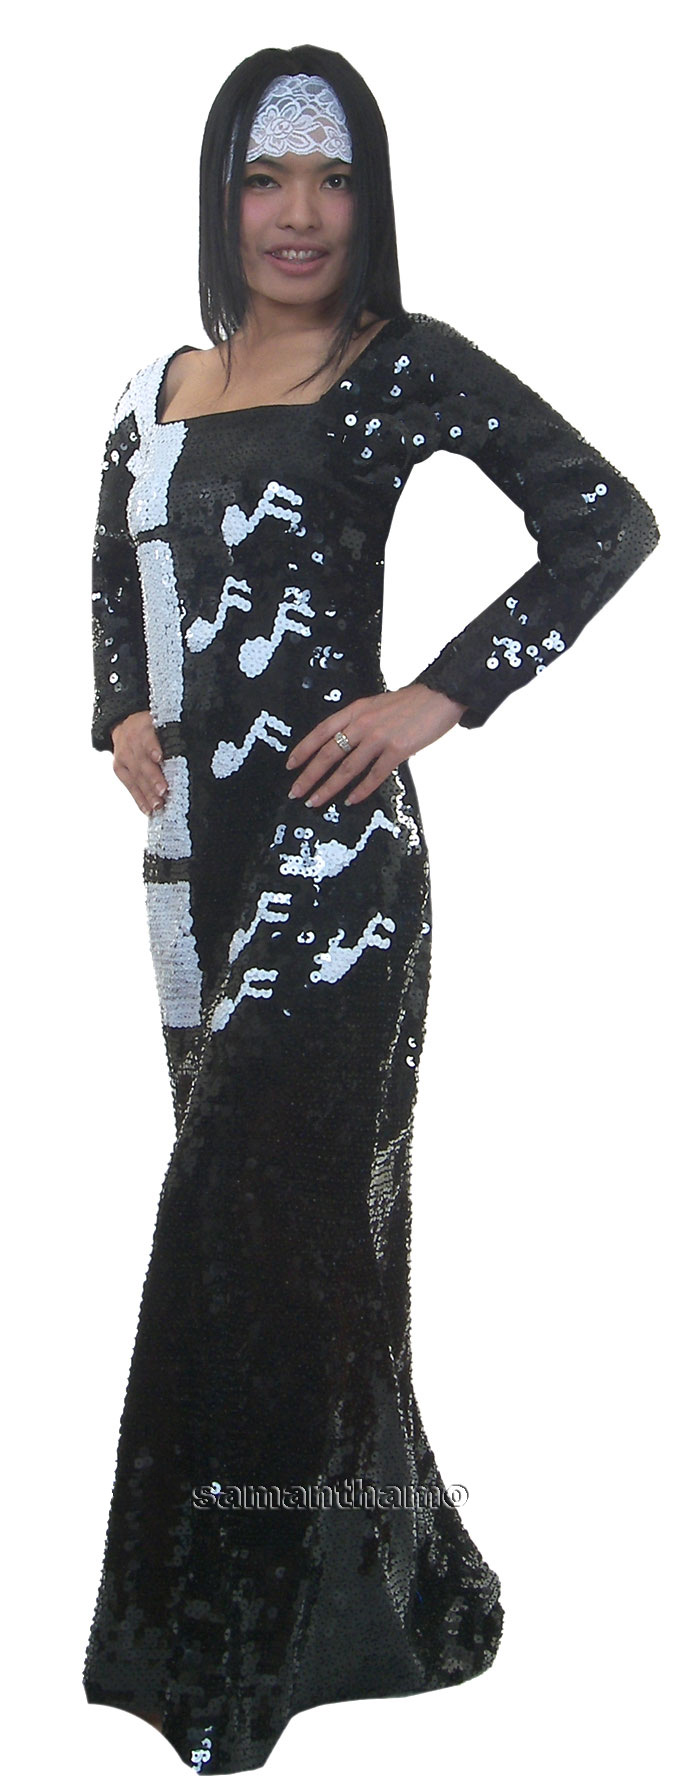 https://michaeljacksoncelebrityclothing.com/stage-cabaret-circus/TM2006-sequin-cabaret-piano-gown.jpg